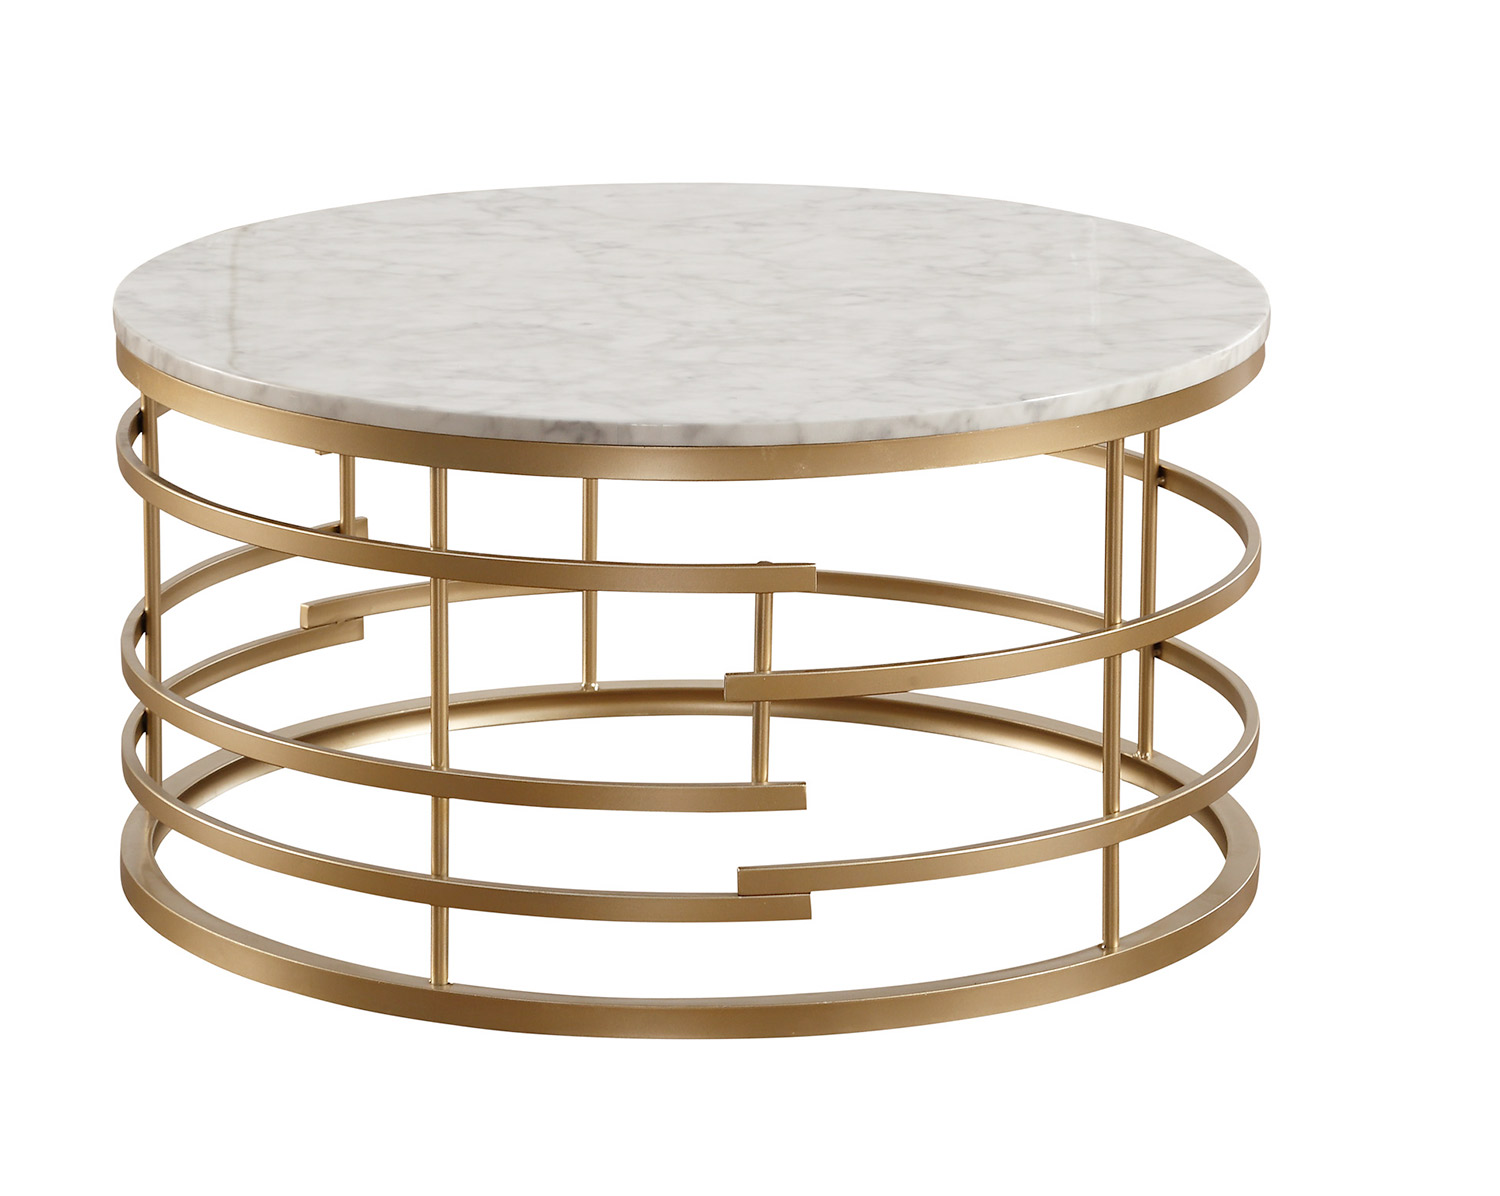 Homelegance Brassica Round Cocktail/Coffee Table with Faux Marble Top - Gold - White Marble Top